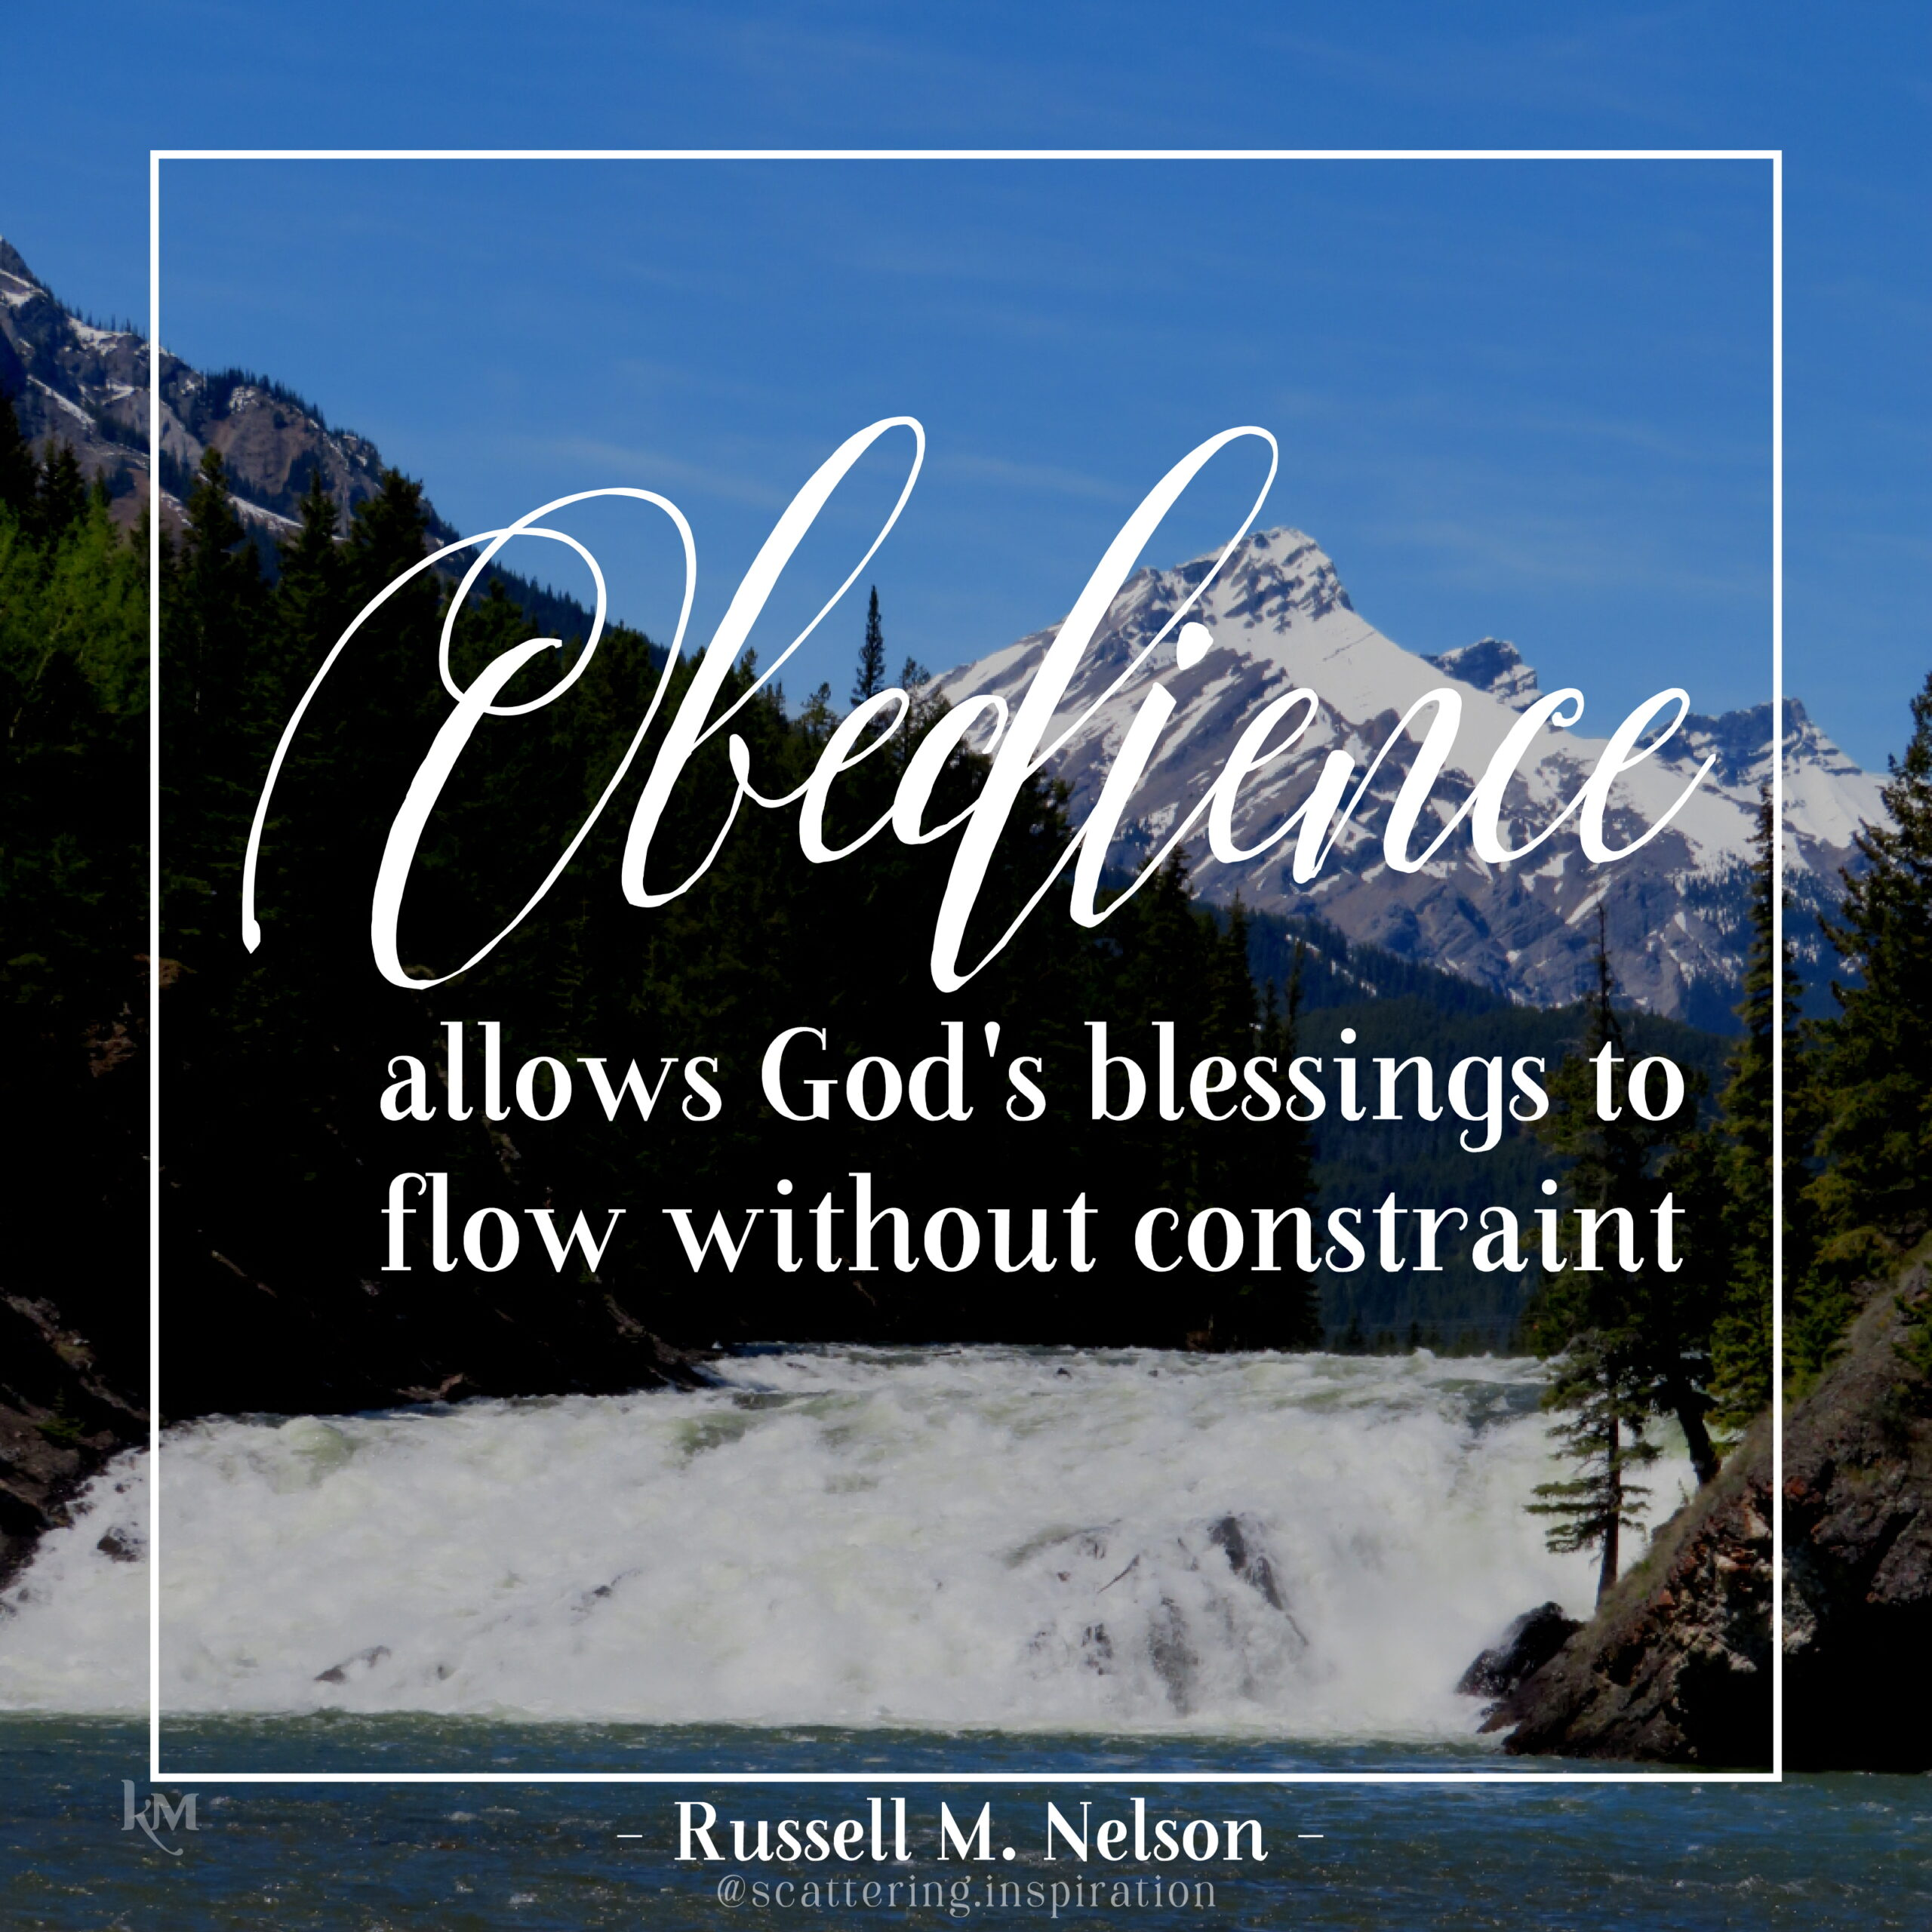 obedience allows